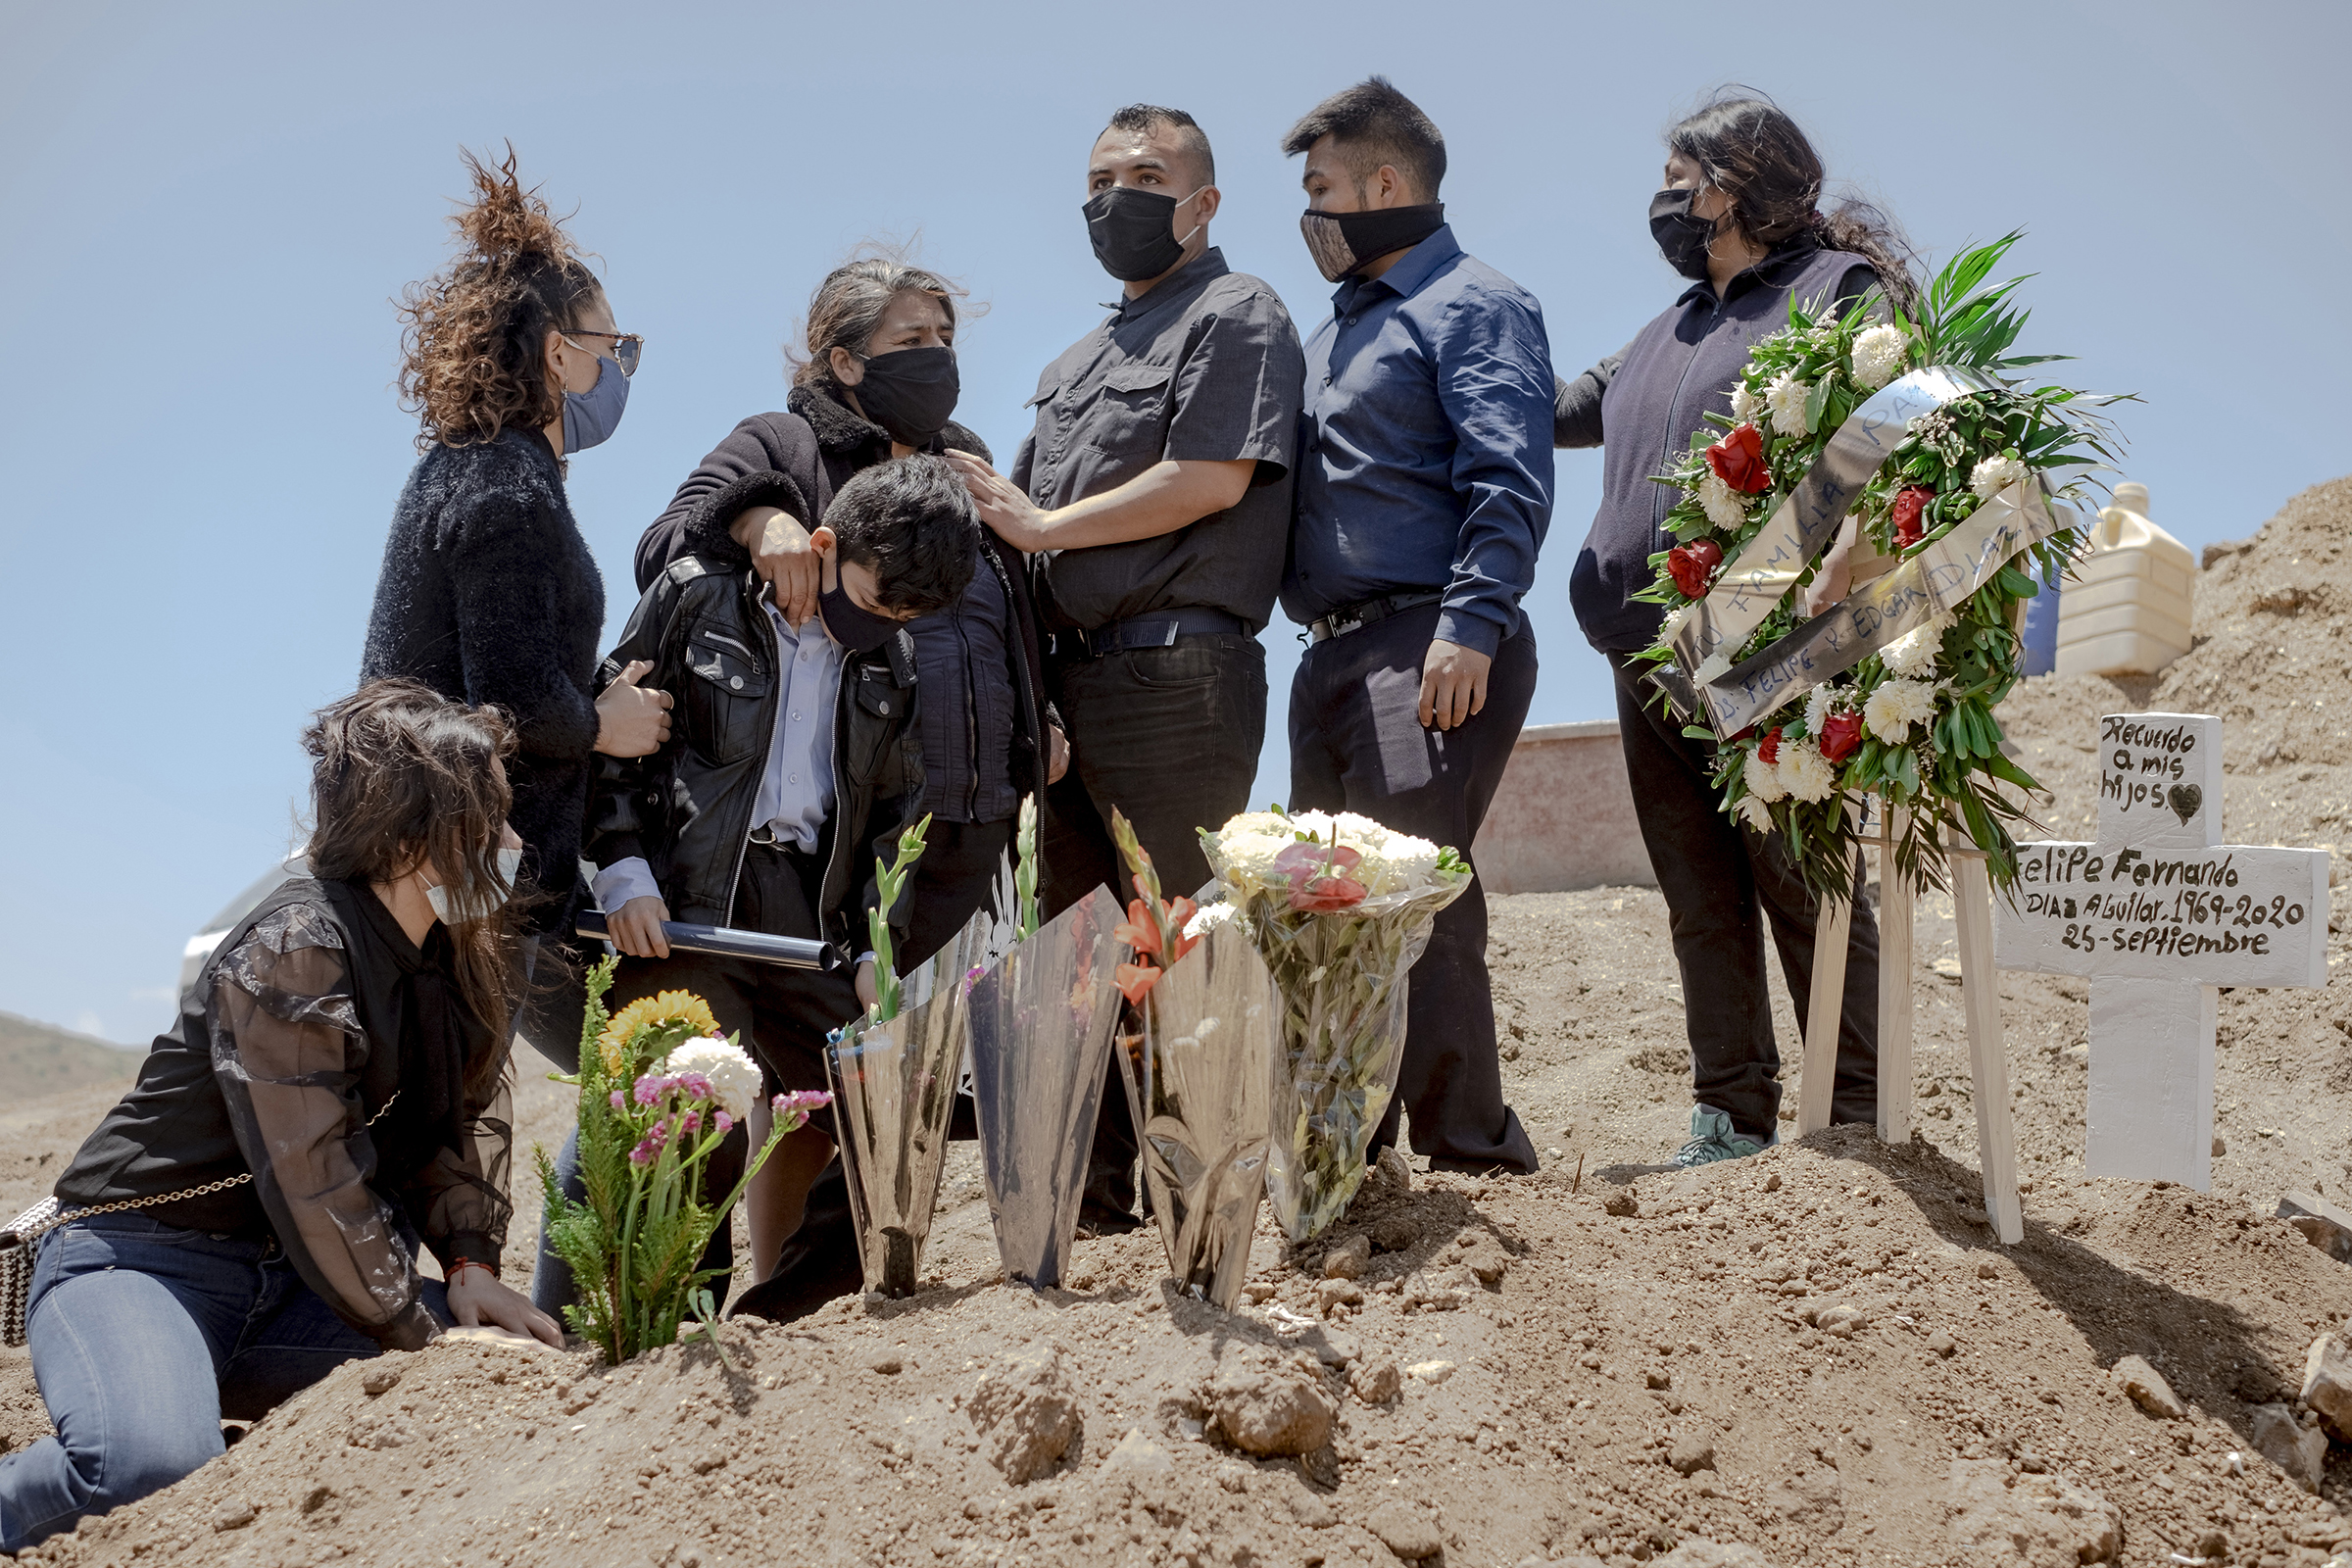 A family wearing protective masks mourns during the burial of a relative who died from coronavirus at Municipal Cemetery No. 13 in Tijuana, Mexico, on May 12.